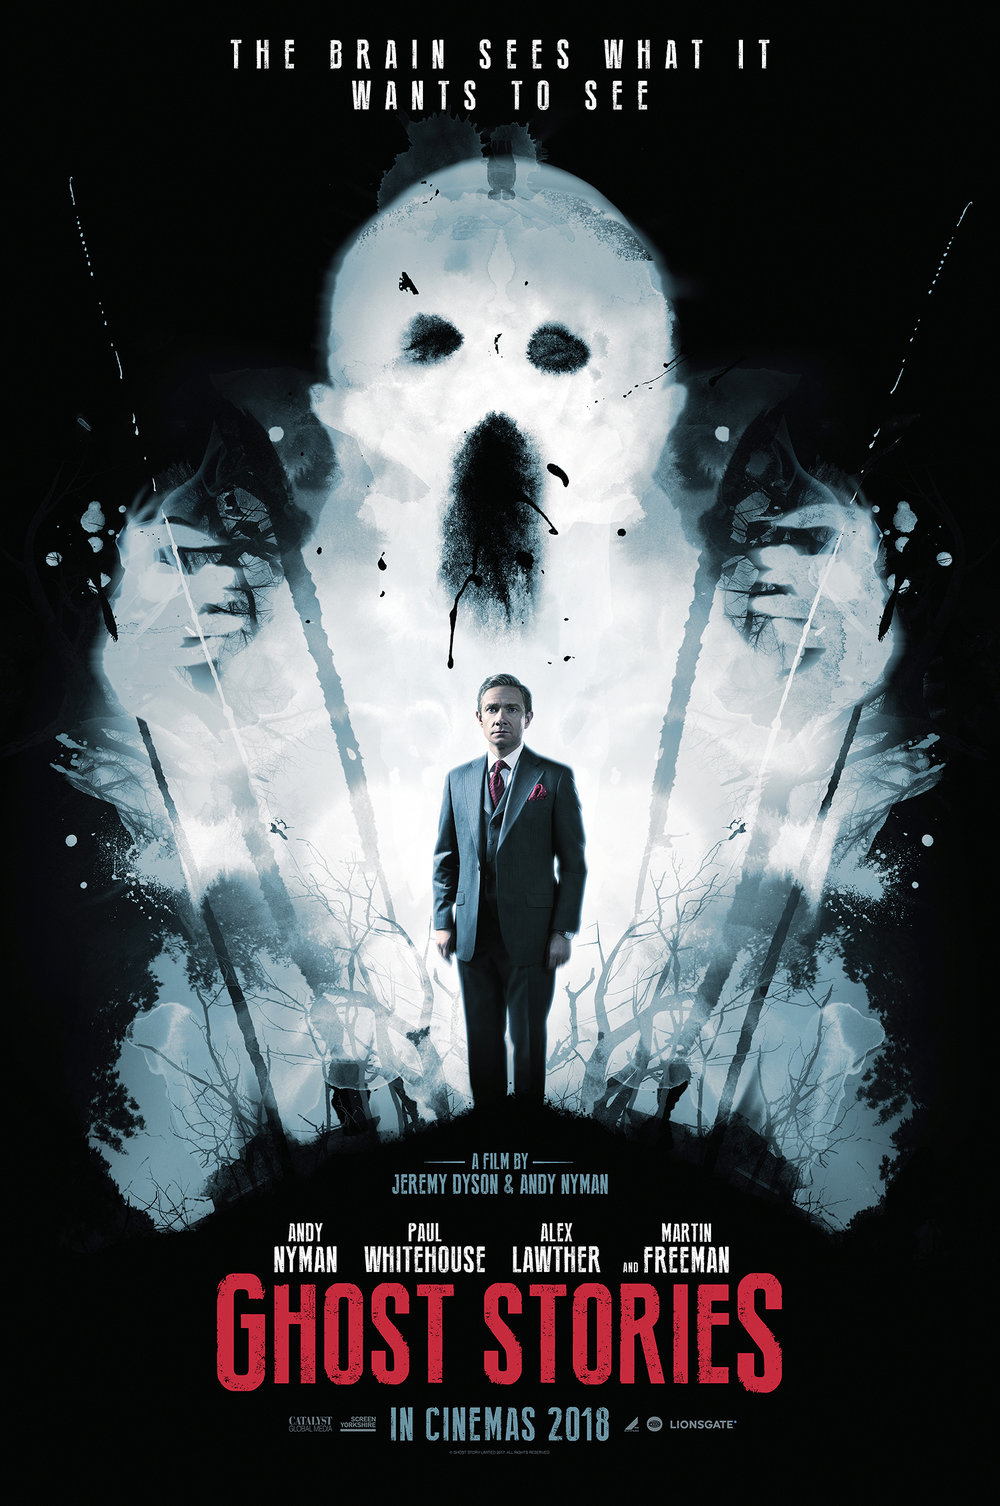 exhilarating-trailer-for-the-horror-anthology-movie-ghost-stories-with-martin-freeman1